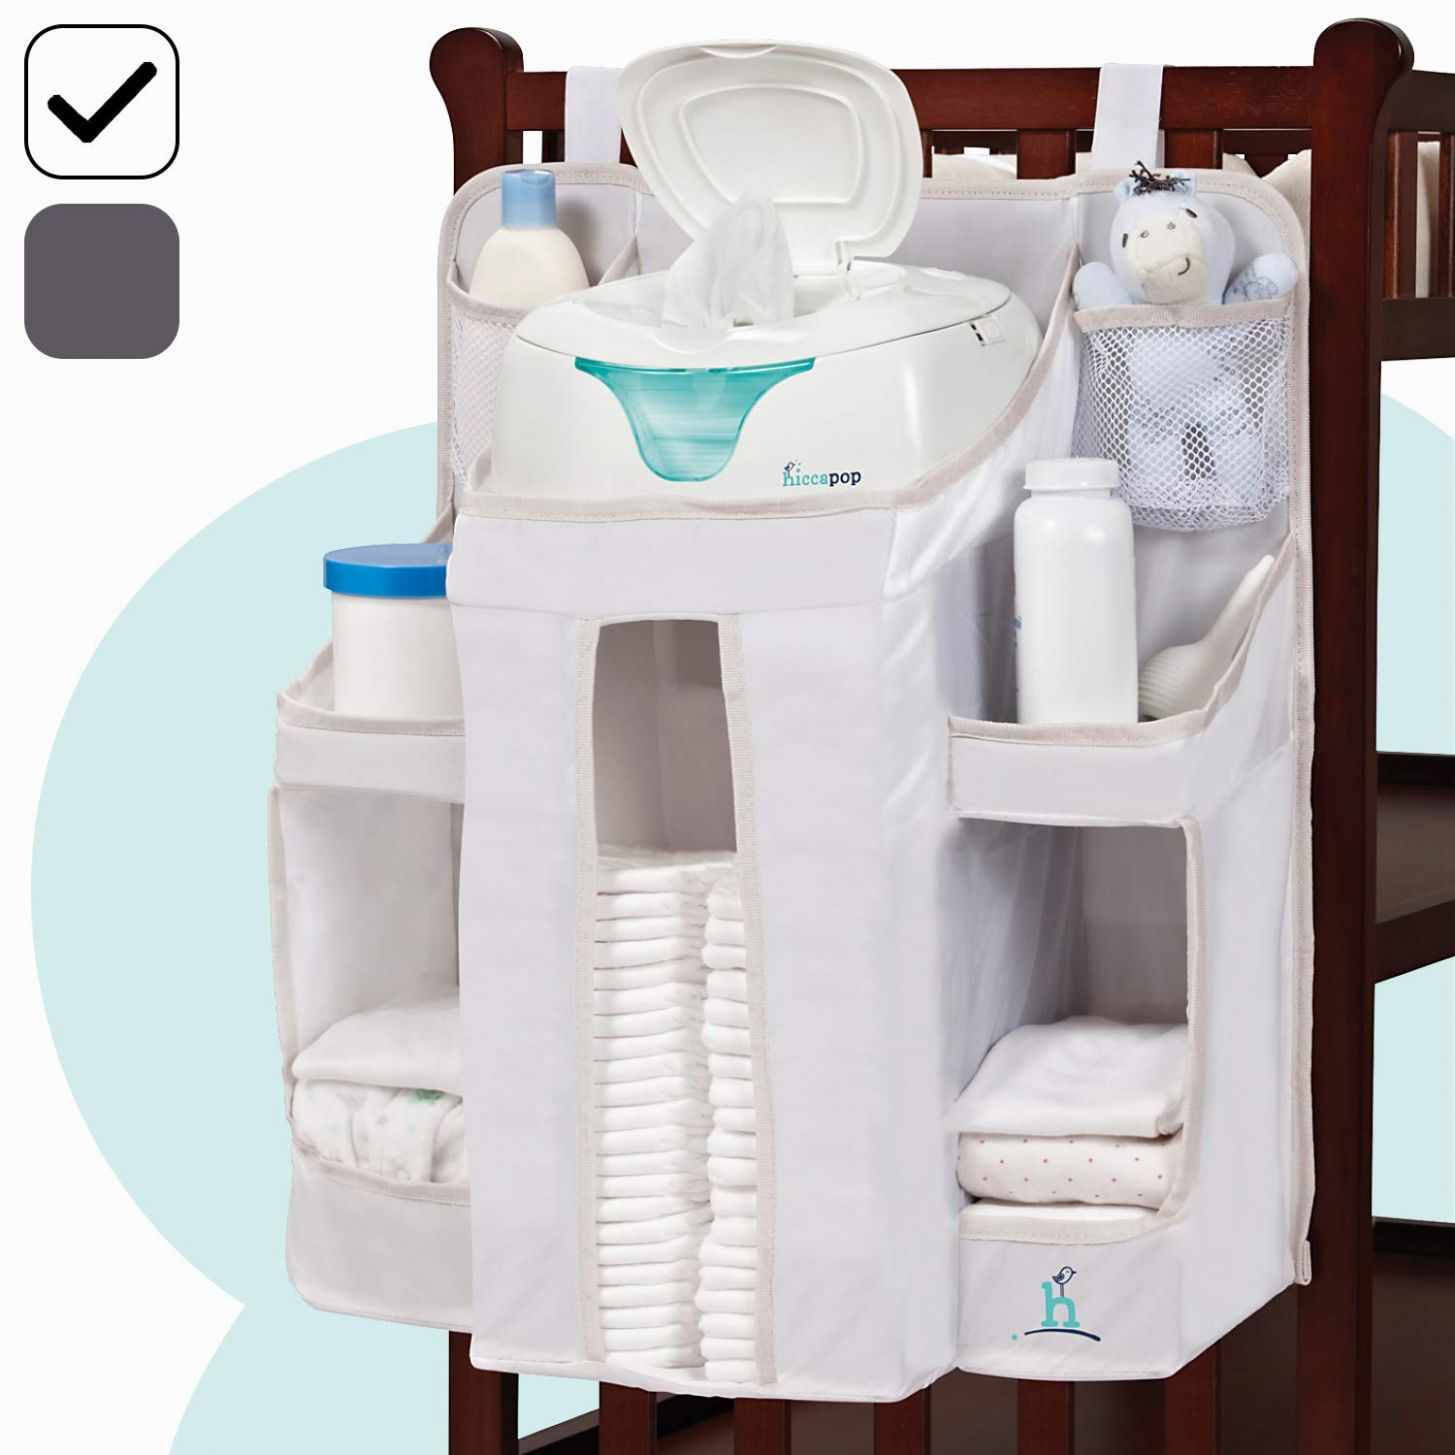 hiccapop Nursery Organizer and Baby Diaper Caddy | Hanging Diaper  Organization Storage for Baby Essentials | Hang on Crib, Changing Table or  Wall - baby room organiser